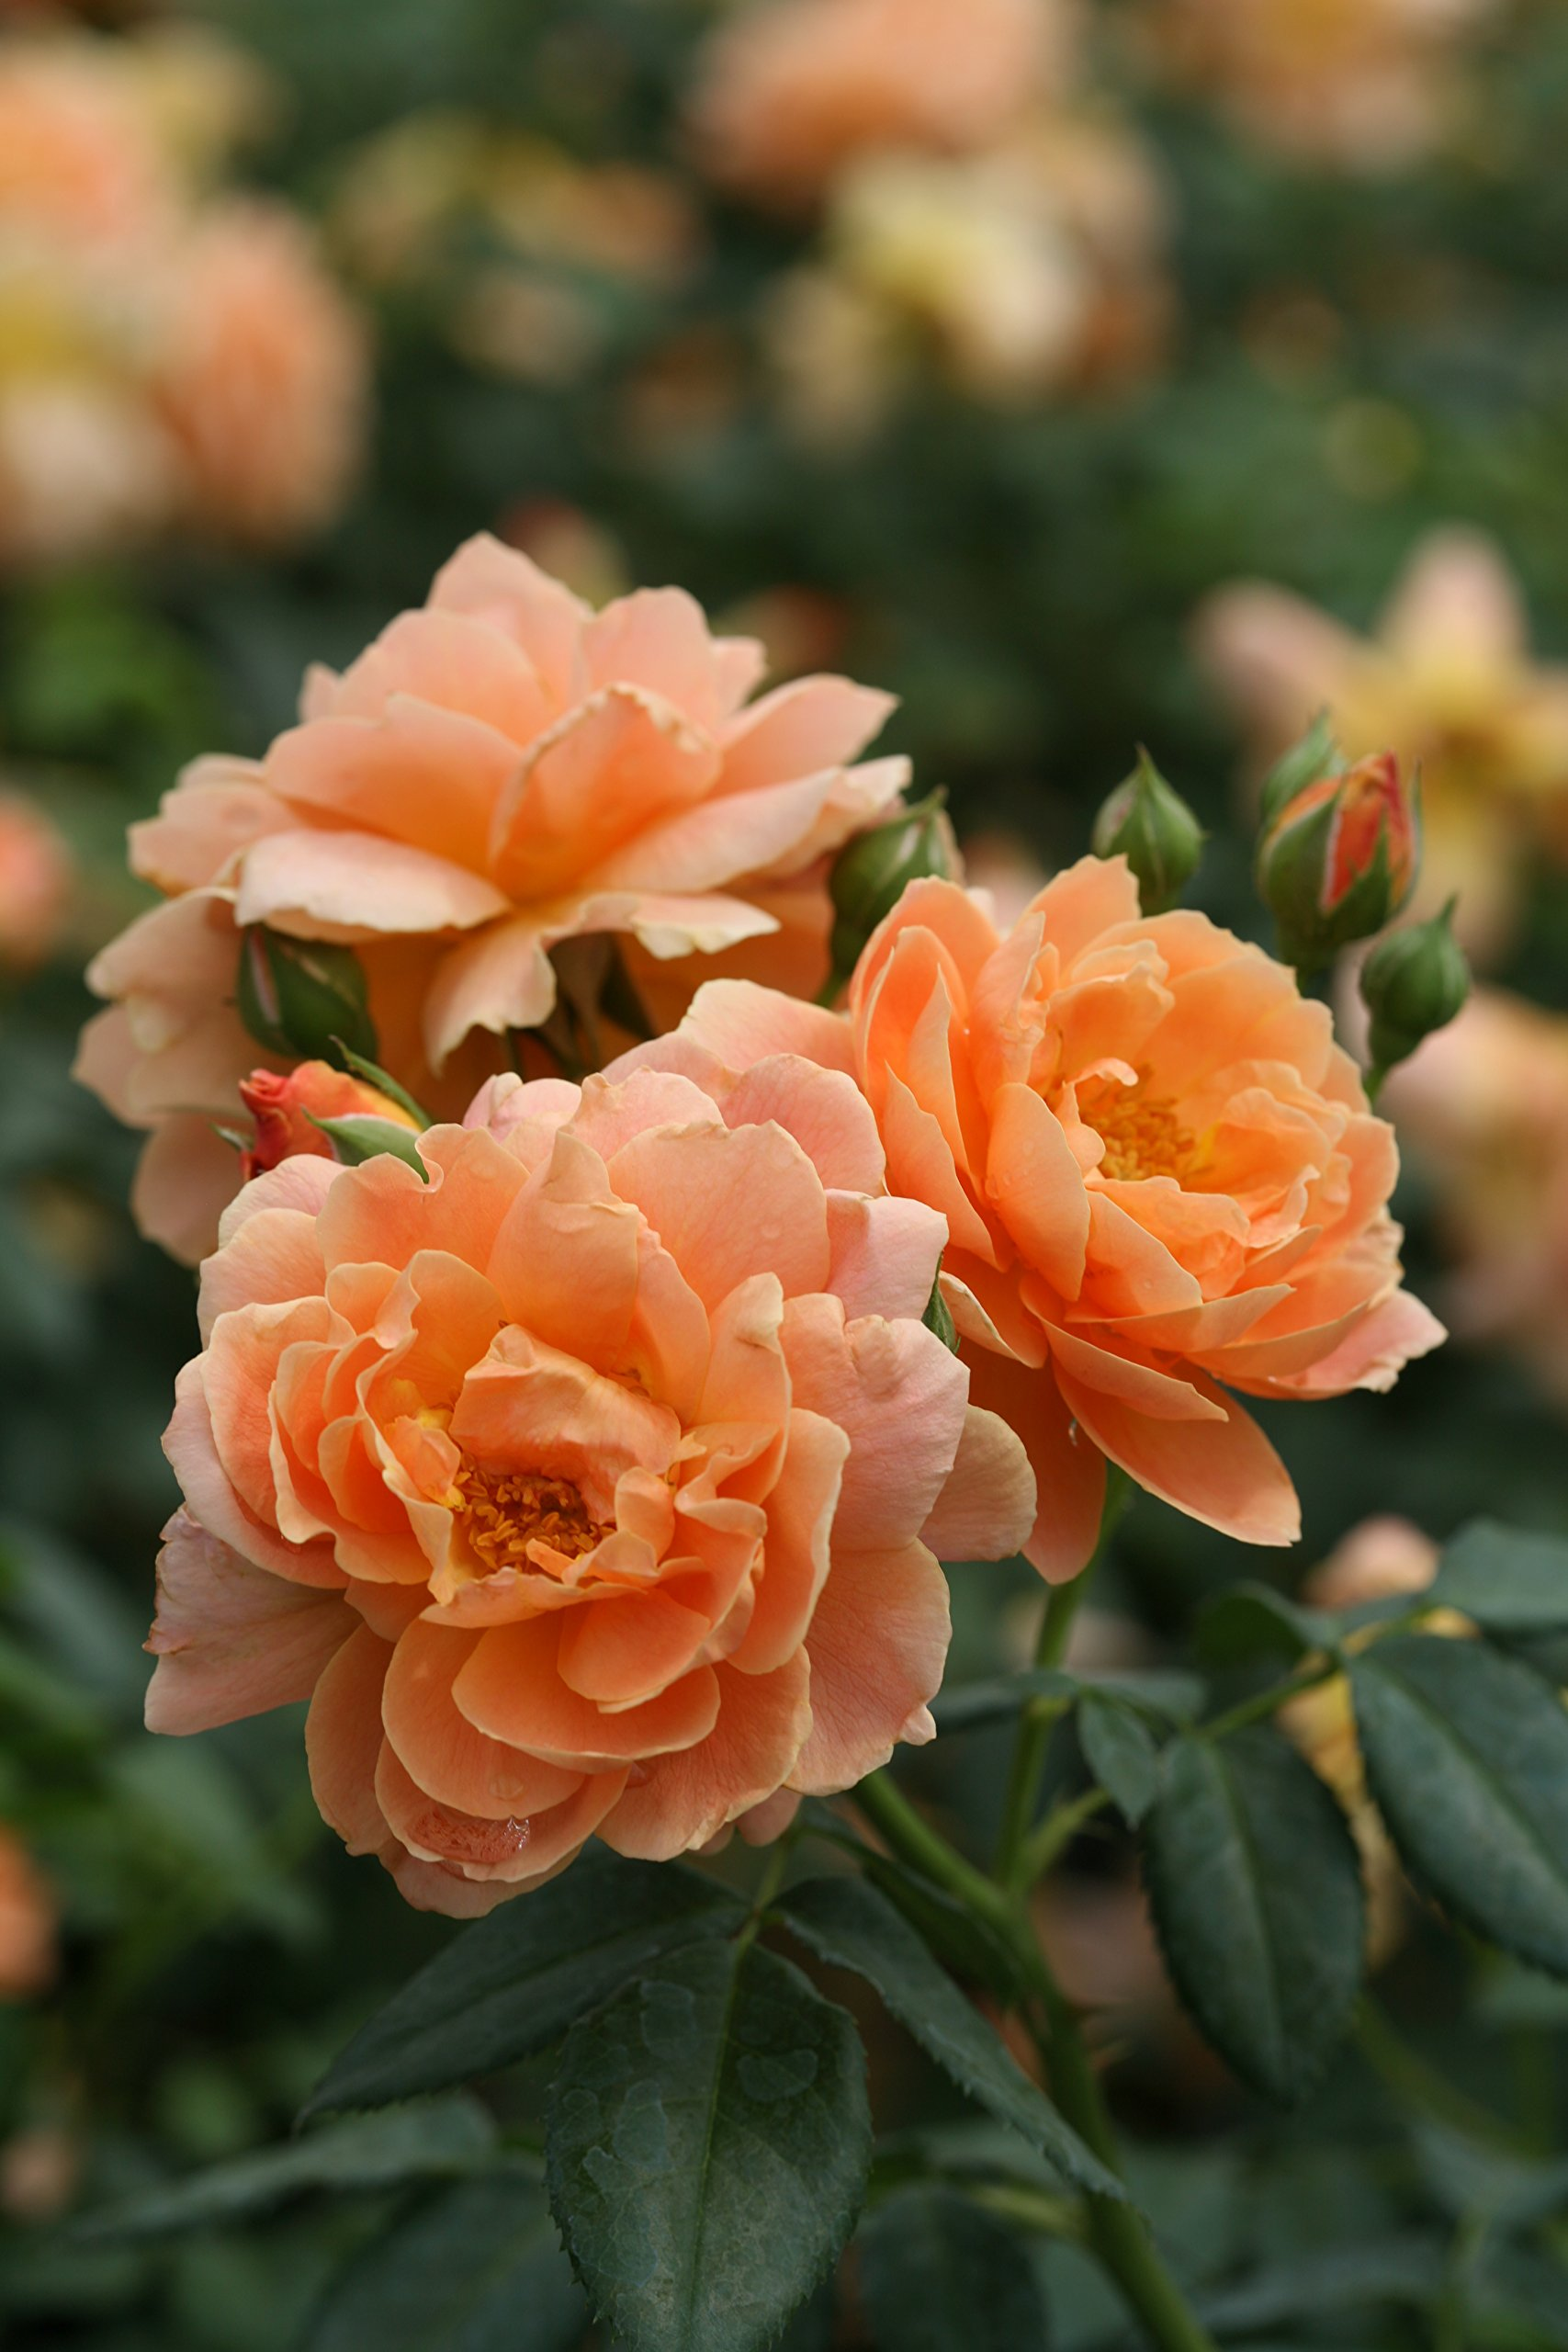 At Last Rose (Rosa) Live Shrub, Orange Flowers, 4.5 in. Quart by Proven Winners (Image #2)